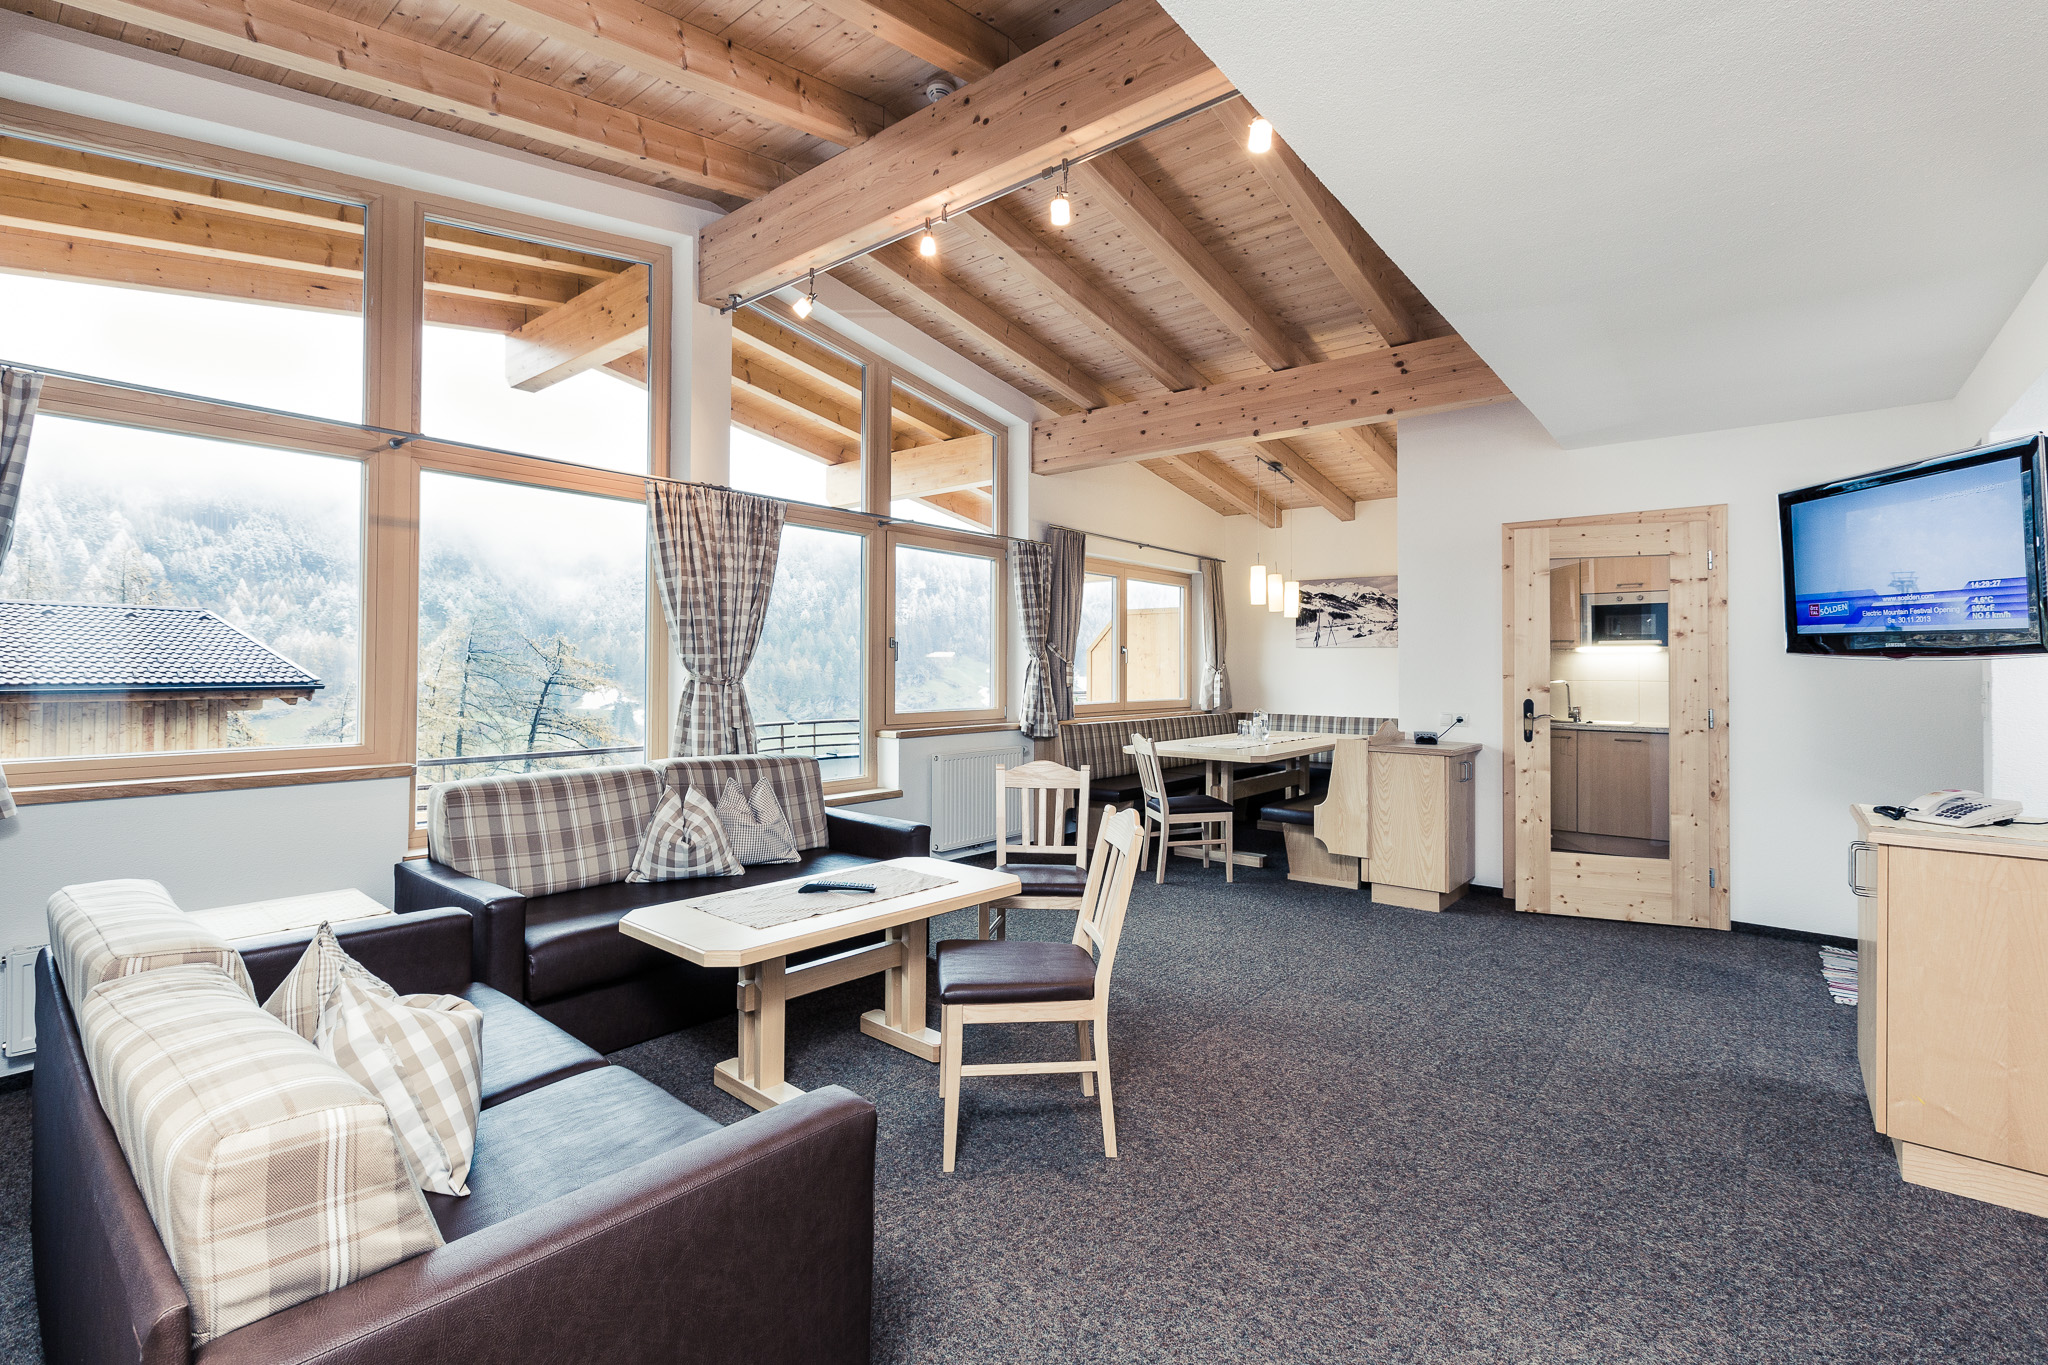 Appartement in Soelden